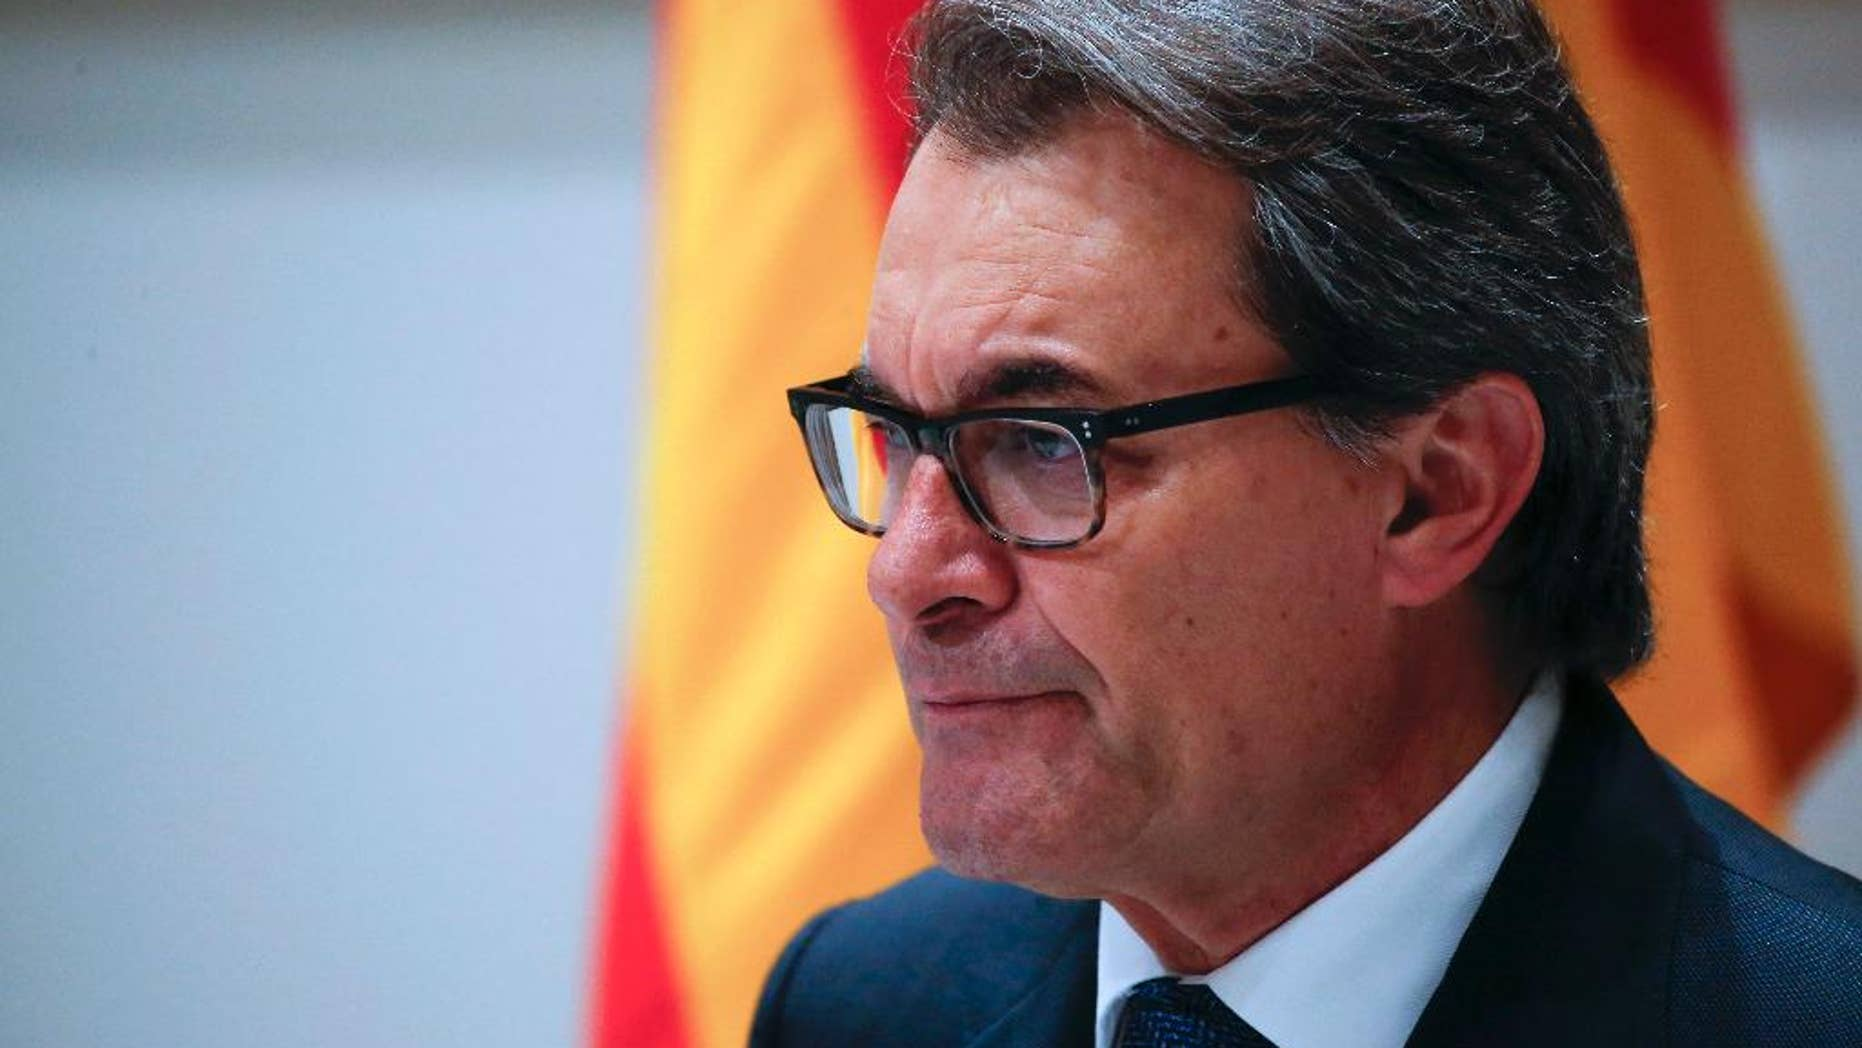 FILE - In this  Jan. 9, 2016 file photo, acting regional President Artur Mas pauses during a news conference in Barcelona. Spanish prosecutors said on Monday, Oct. 3, 2016 that they are seeking a 10-year disqualification from holding public office for former Catalan regional President Artur Mas for staging a vote on Catalonia's secession from Spain despite a suspension order by the Constitutional Court. (AP Photo/Emilio Morenatti, File)